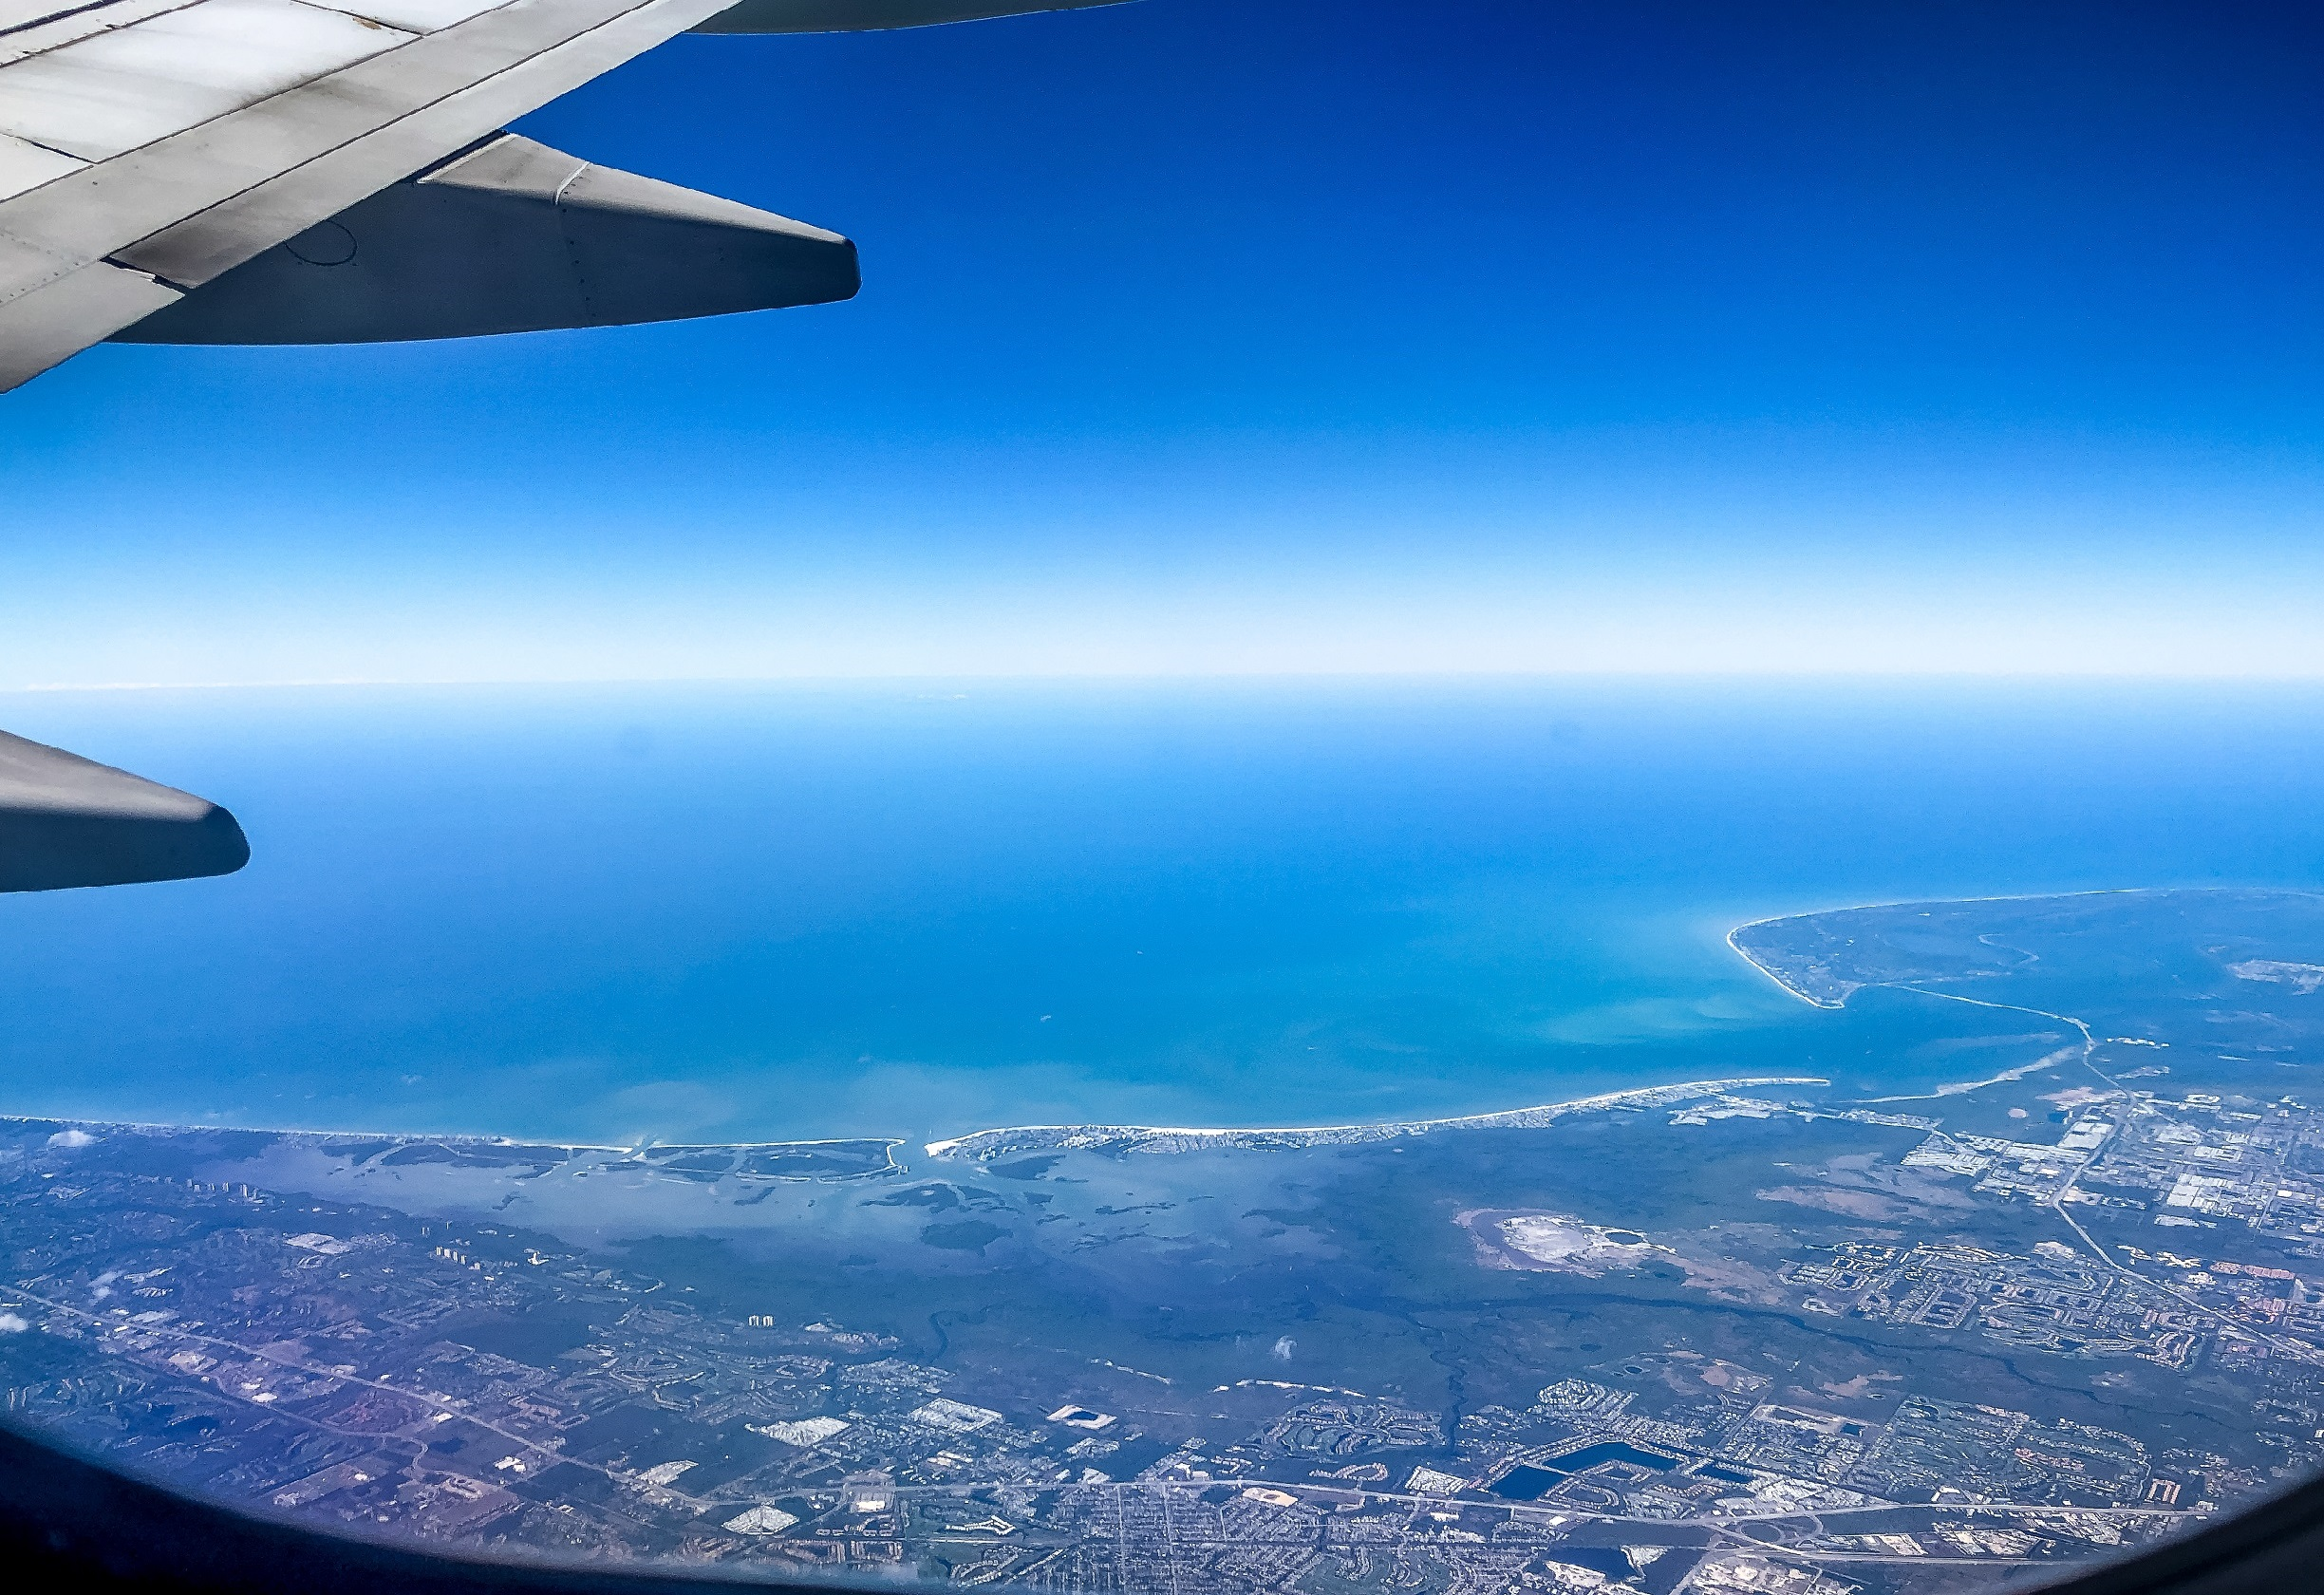 View over SWFL coastline from an airplane